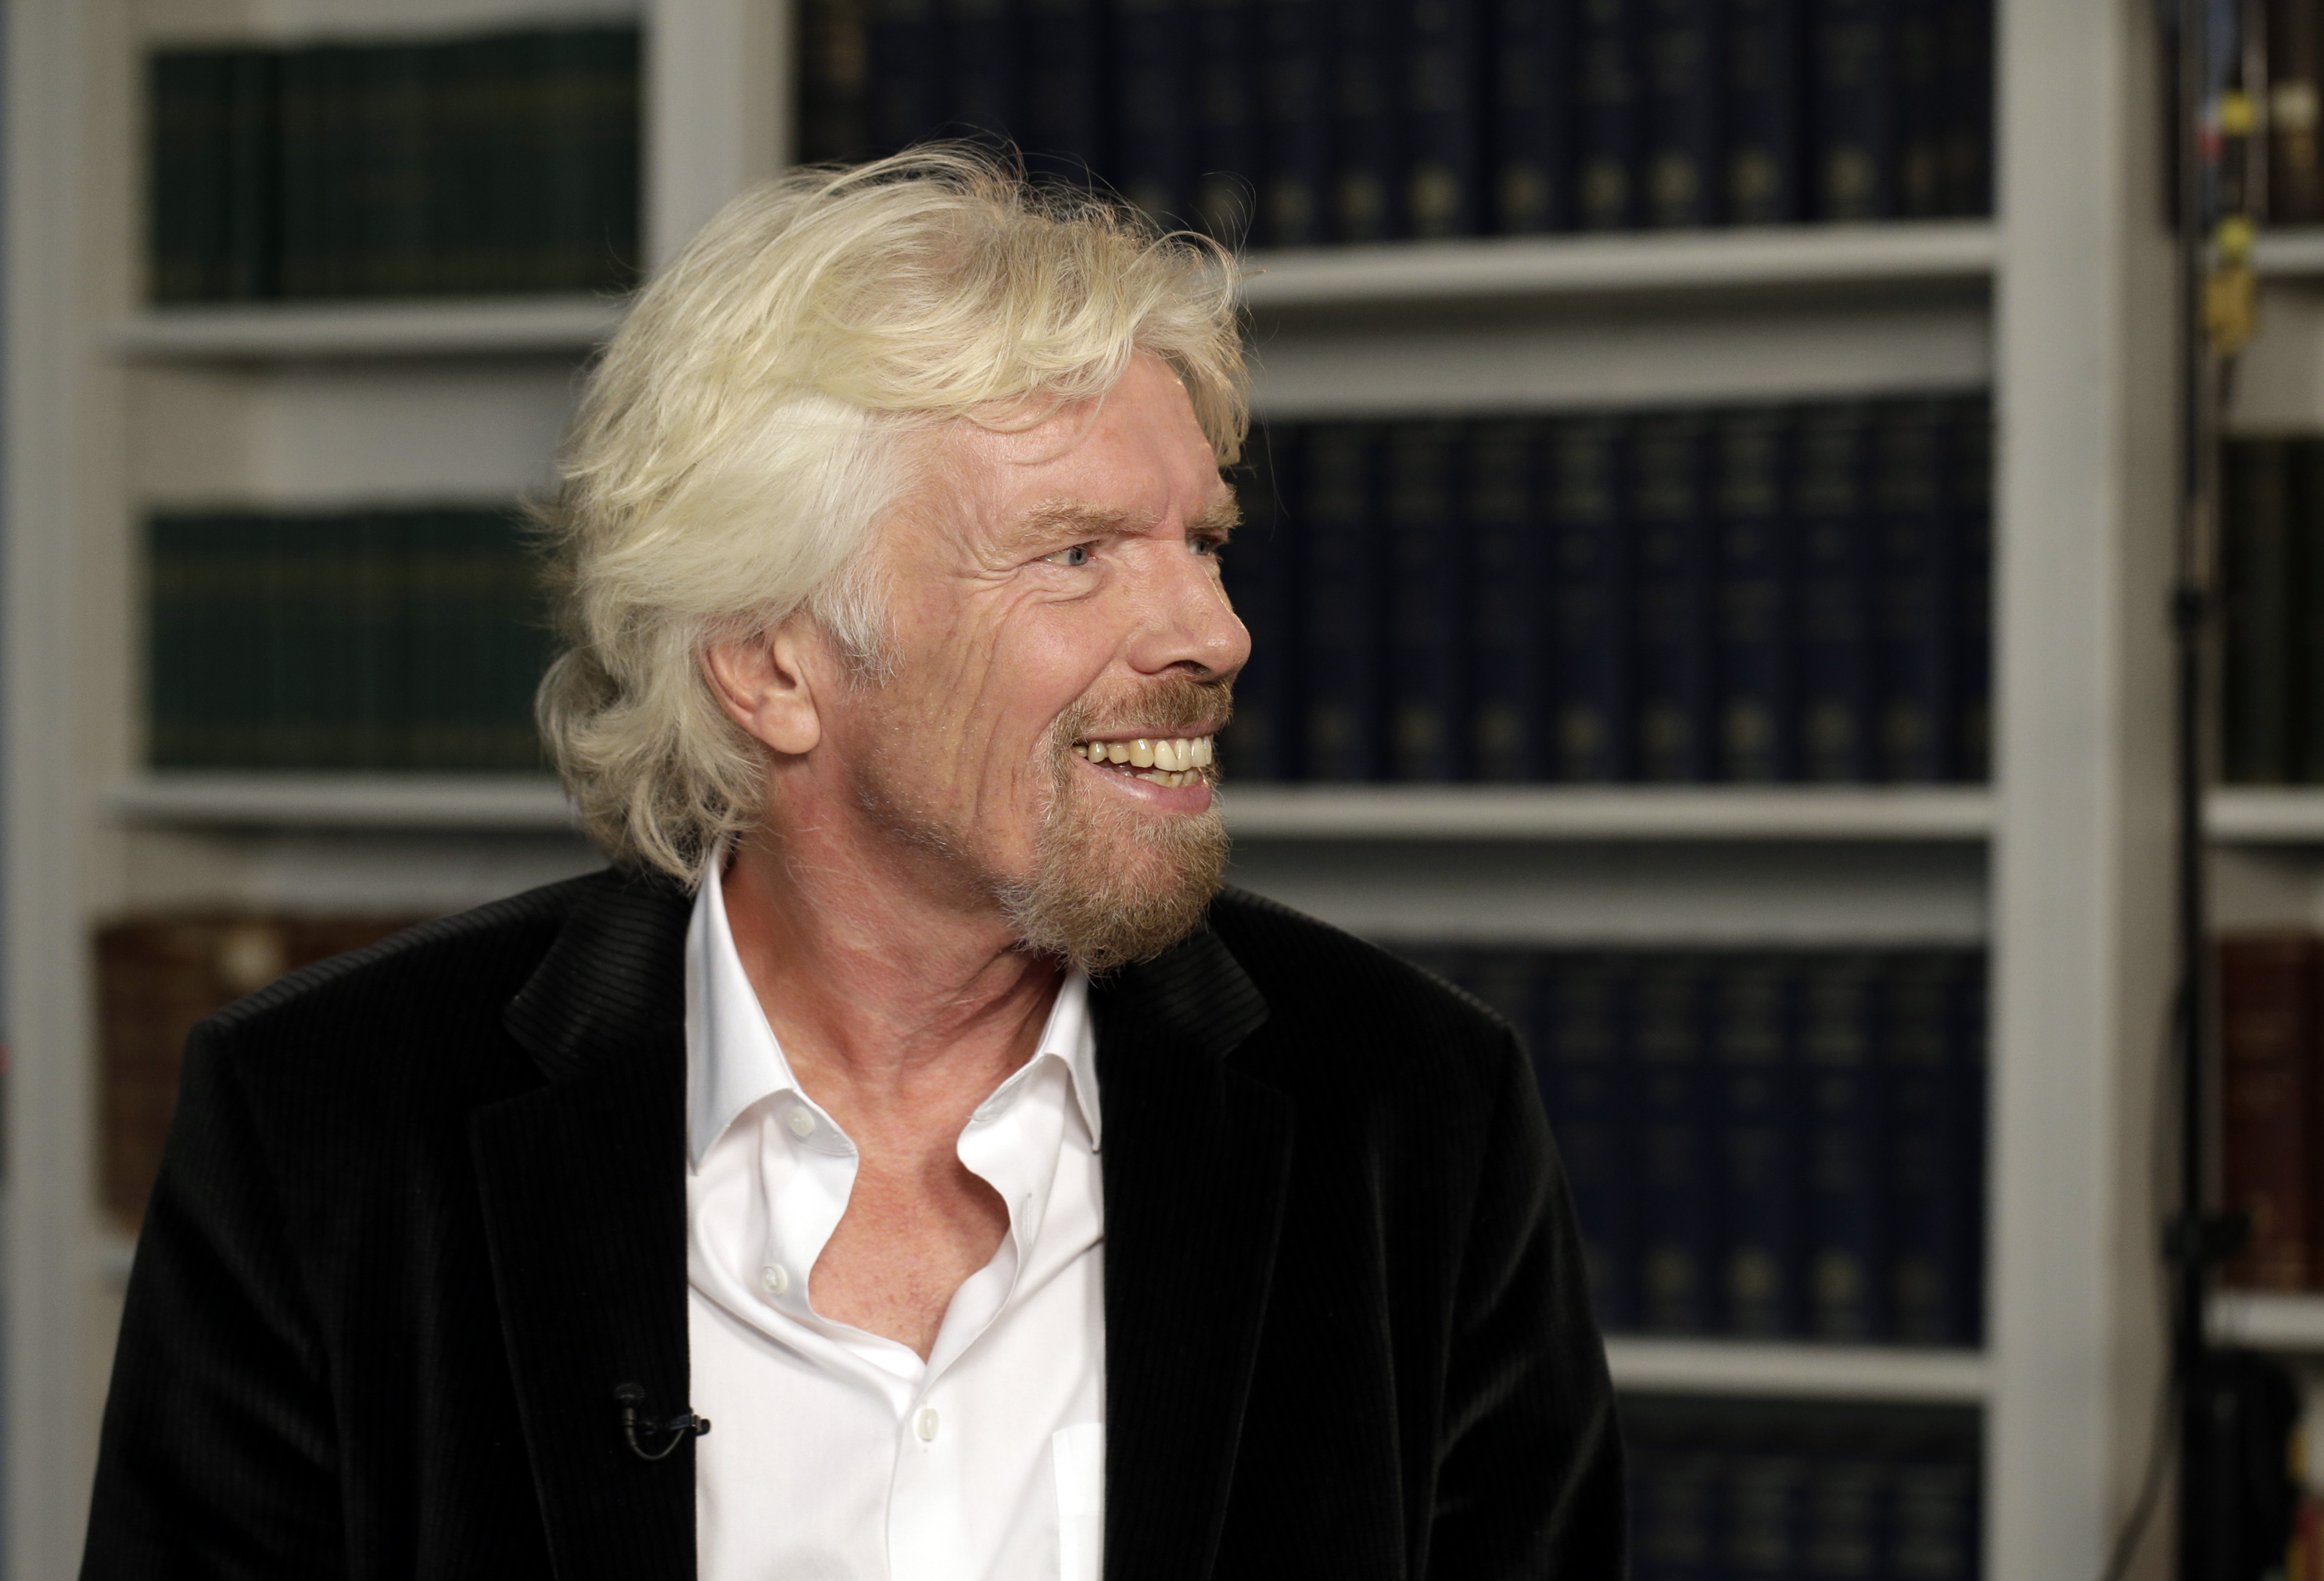 Richard Branson, founder of Virgin Group, during a Bloomberg Television interview in London, England on June 25, 2015.